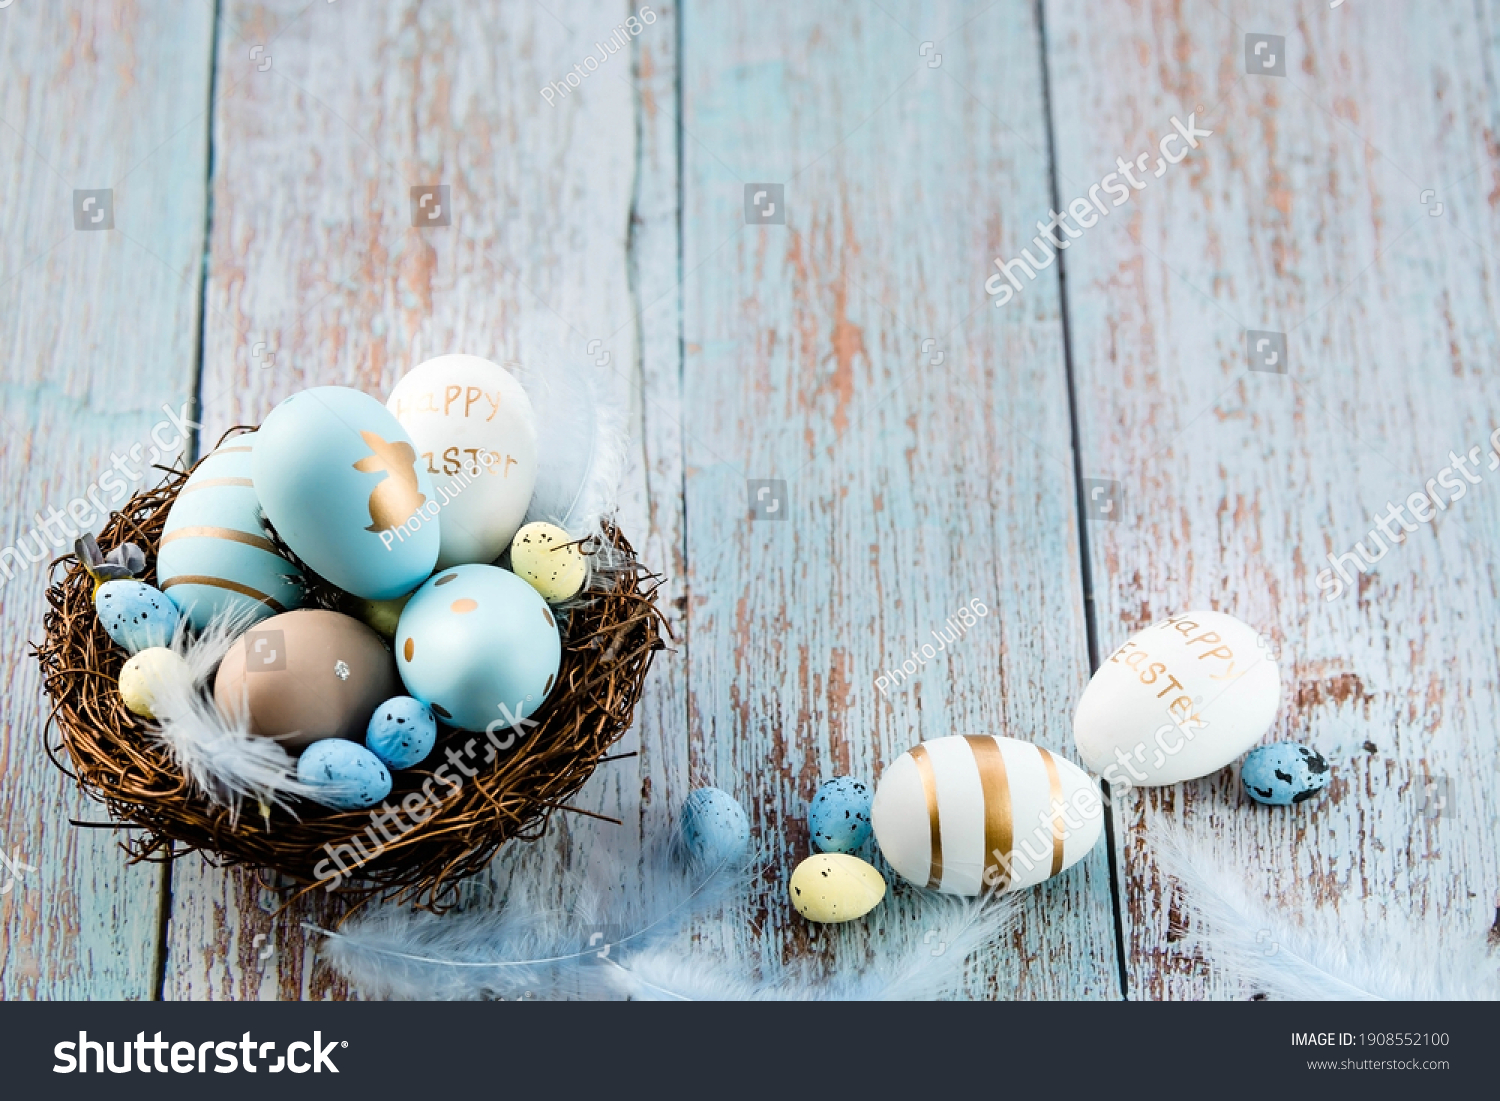 Easter eggs, feathers in a nest on a blue wooden background. The minimal concept. Top view. Card with a copy of the place for the text. #1908552100